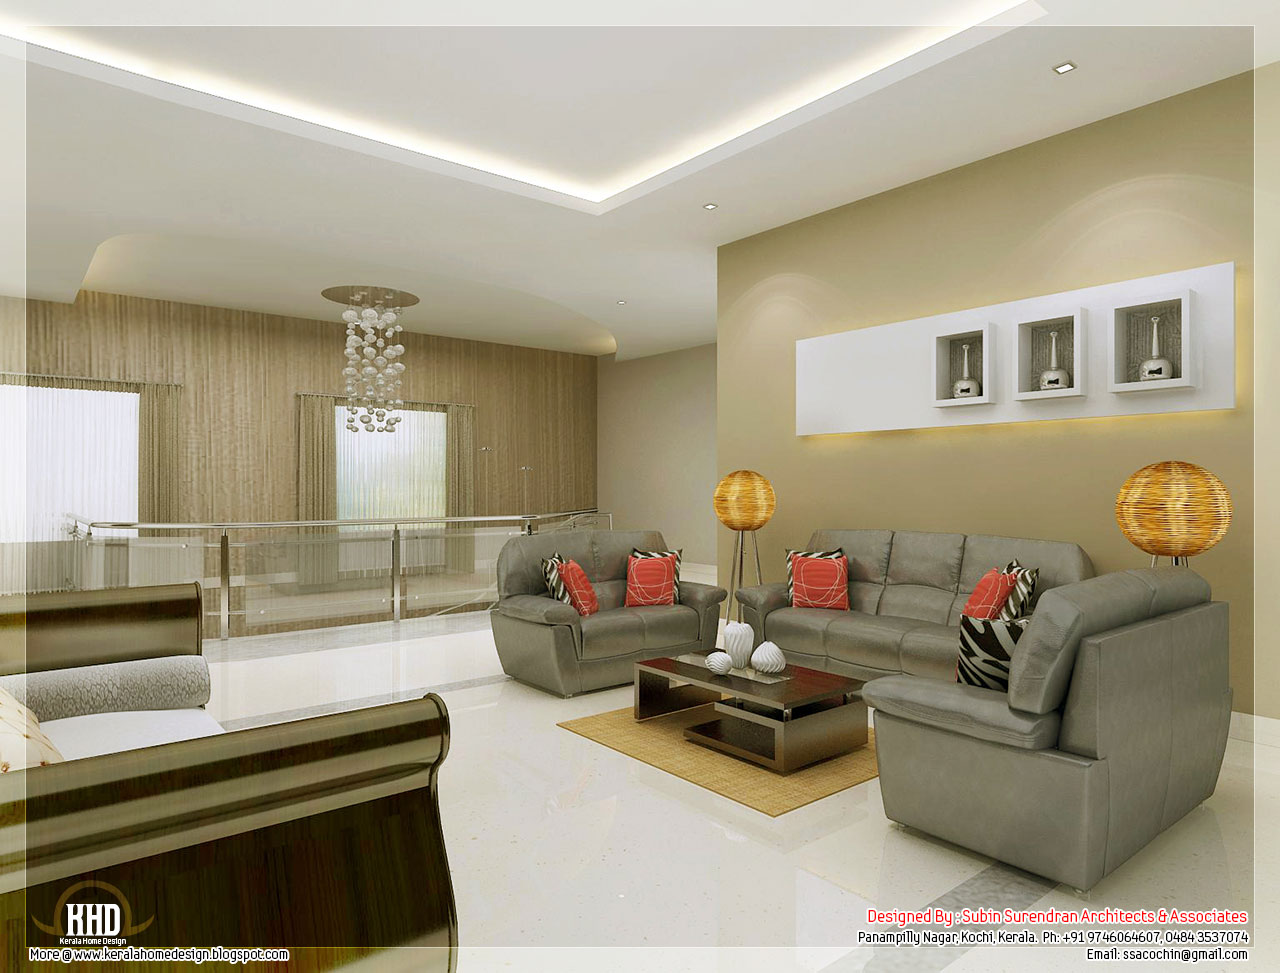 Awesome 3d interior renderings kerala house design for 3d interior design of living room